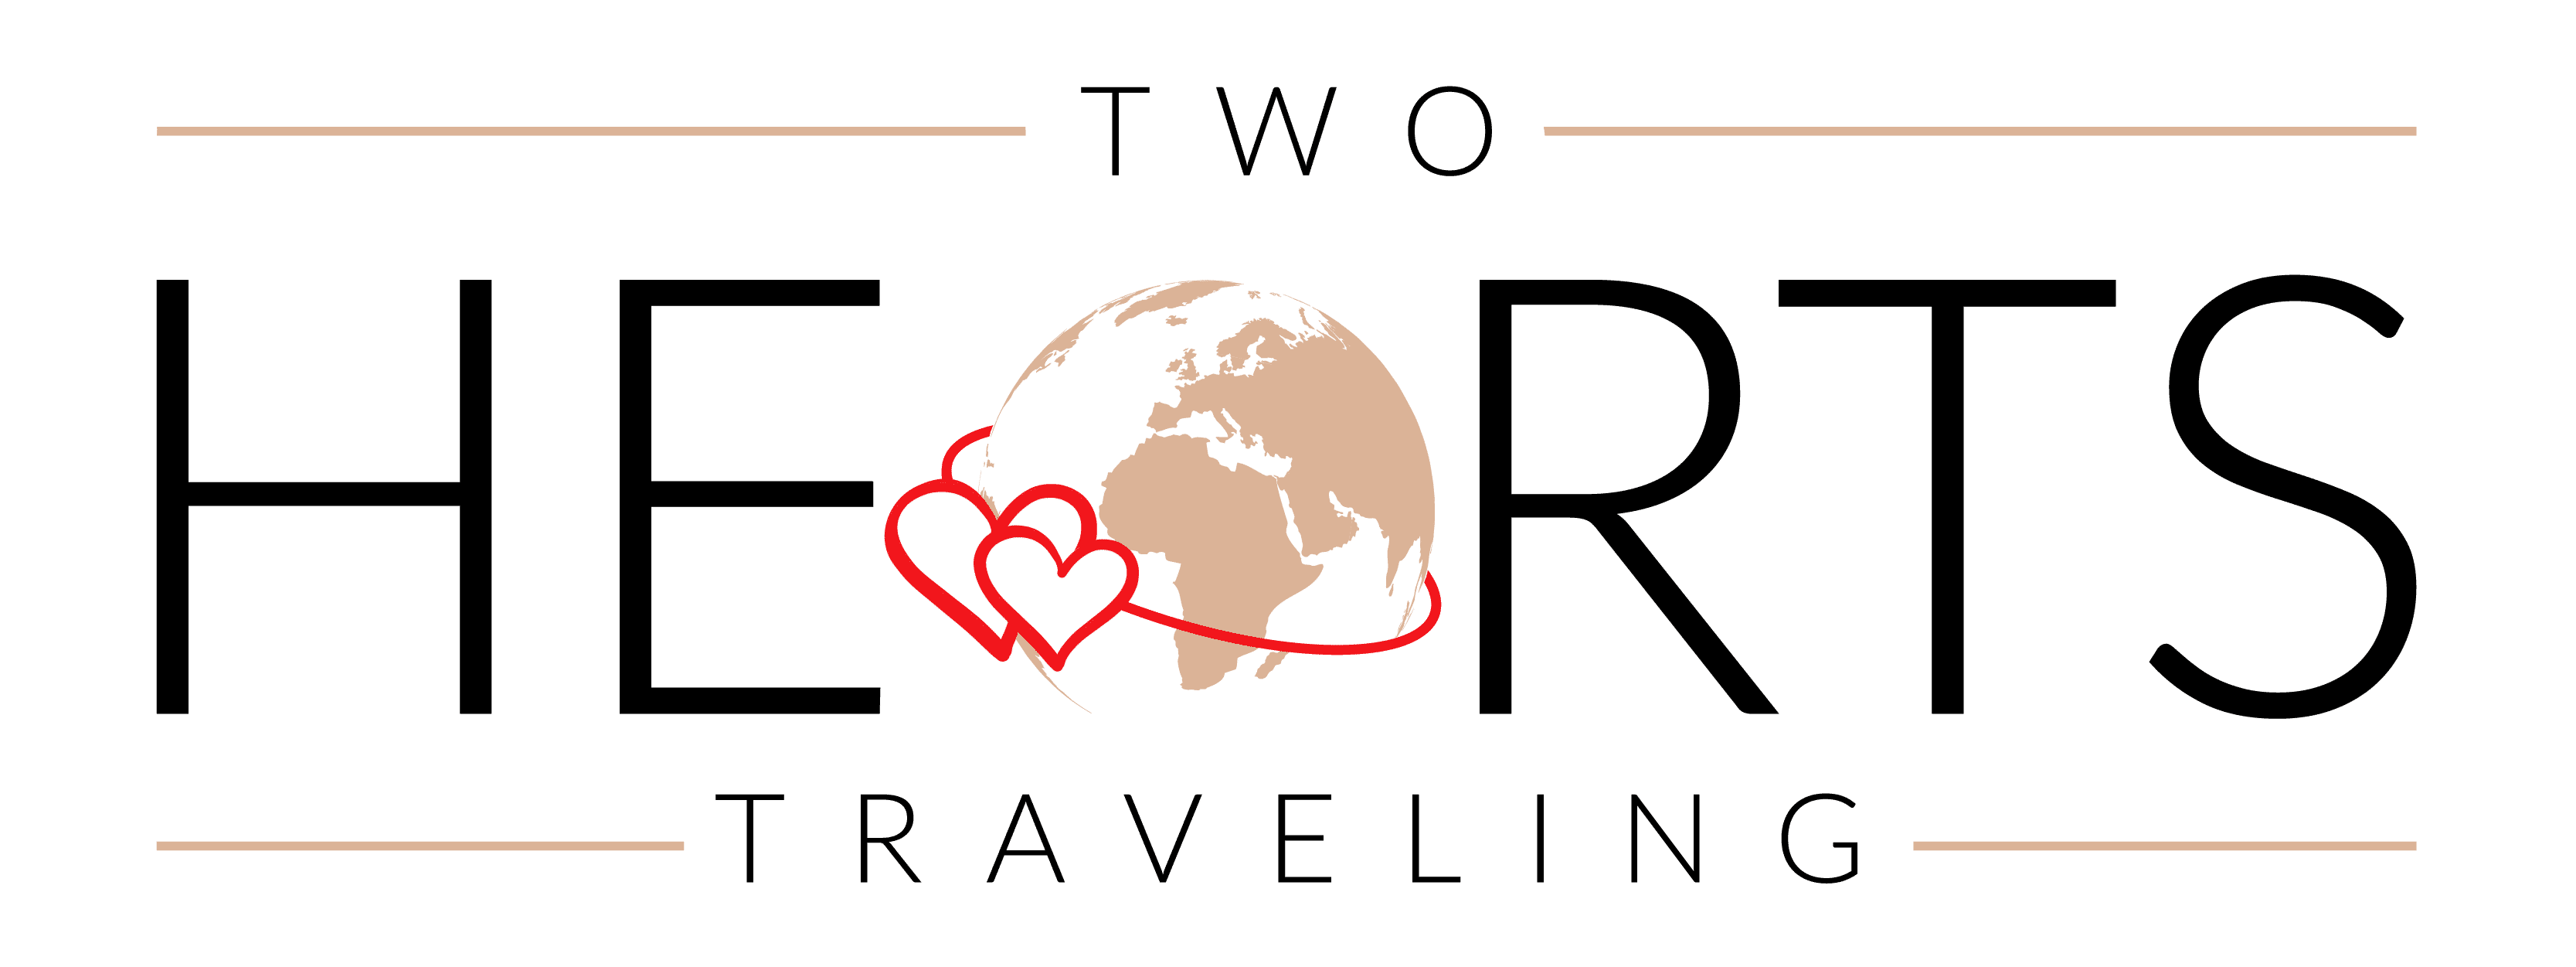 Two Hearts Traveling